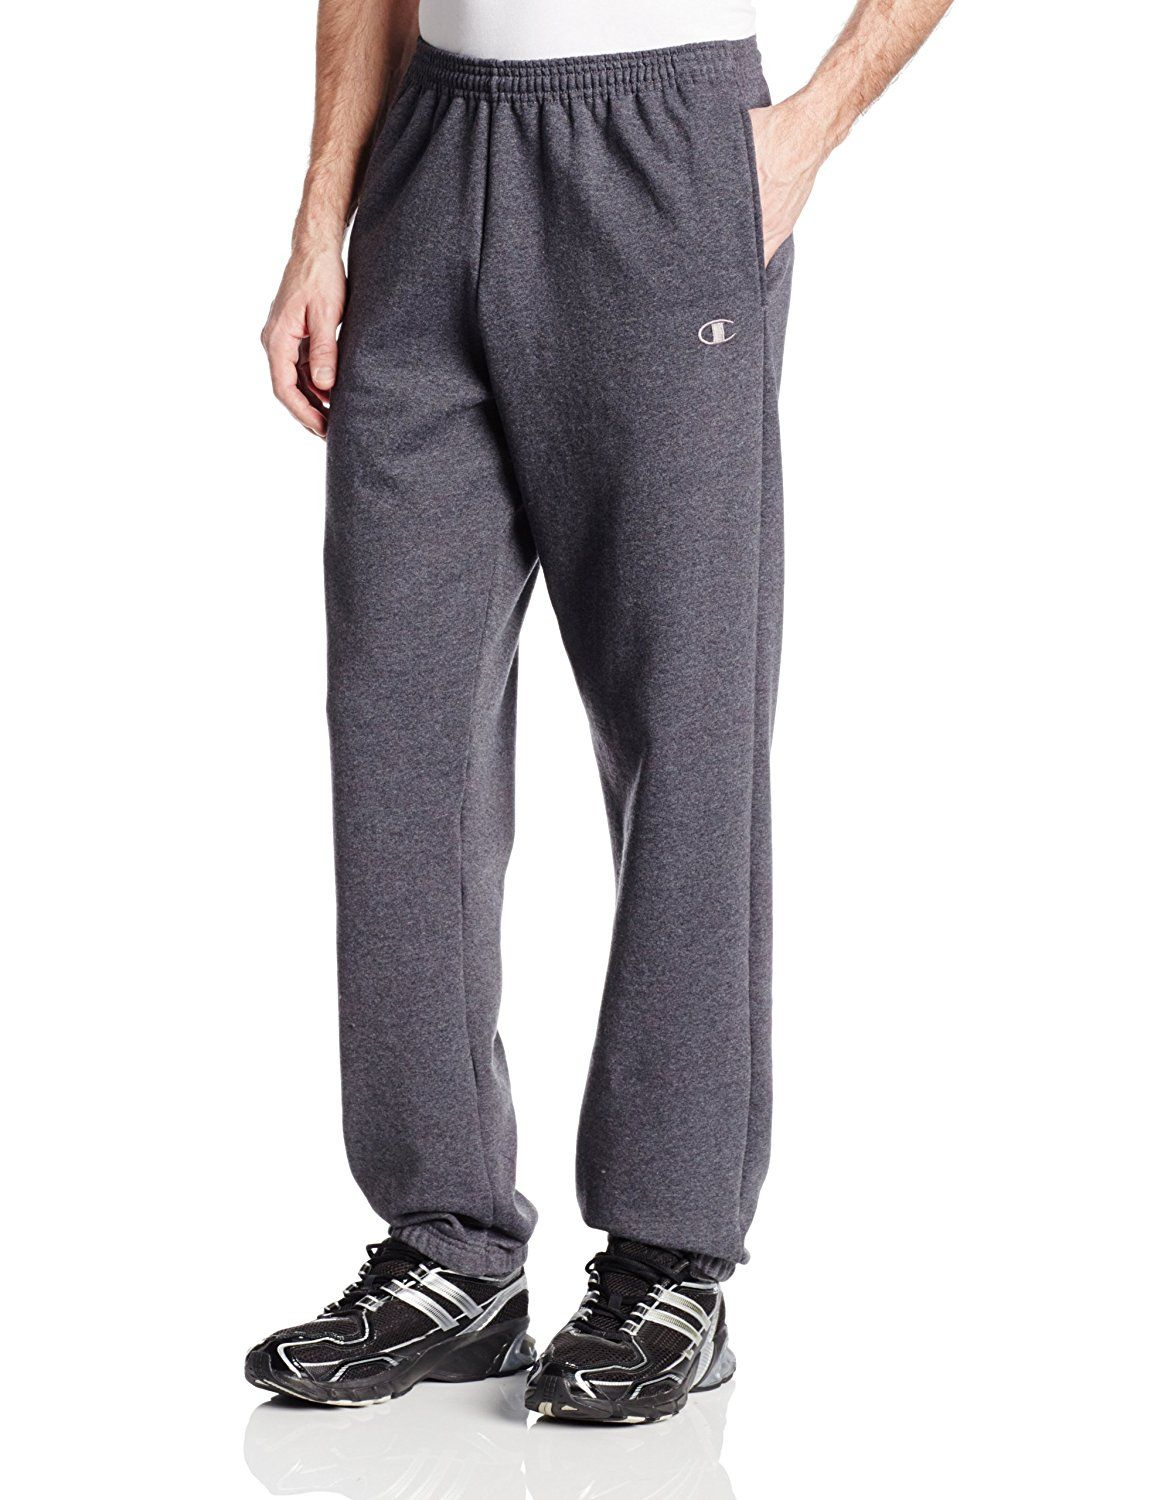 6f4fa46b54d9 Champion Men s Elastic Hem Eco Fleece Sweatpant at Amazon Men s Clothing  store  Athletic Pants